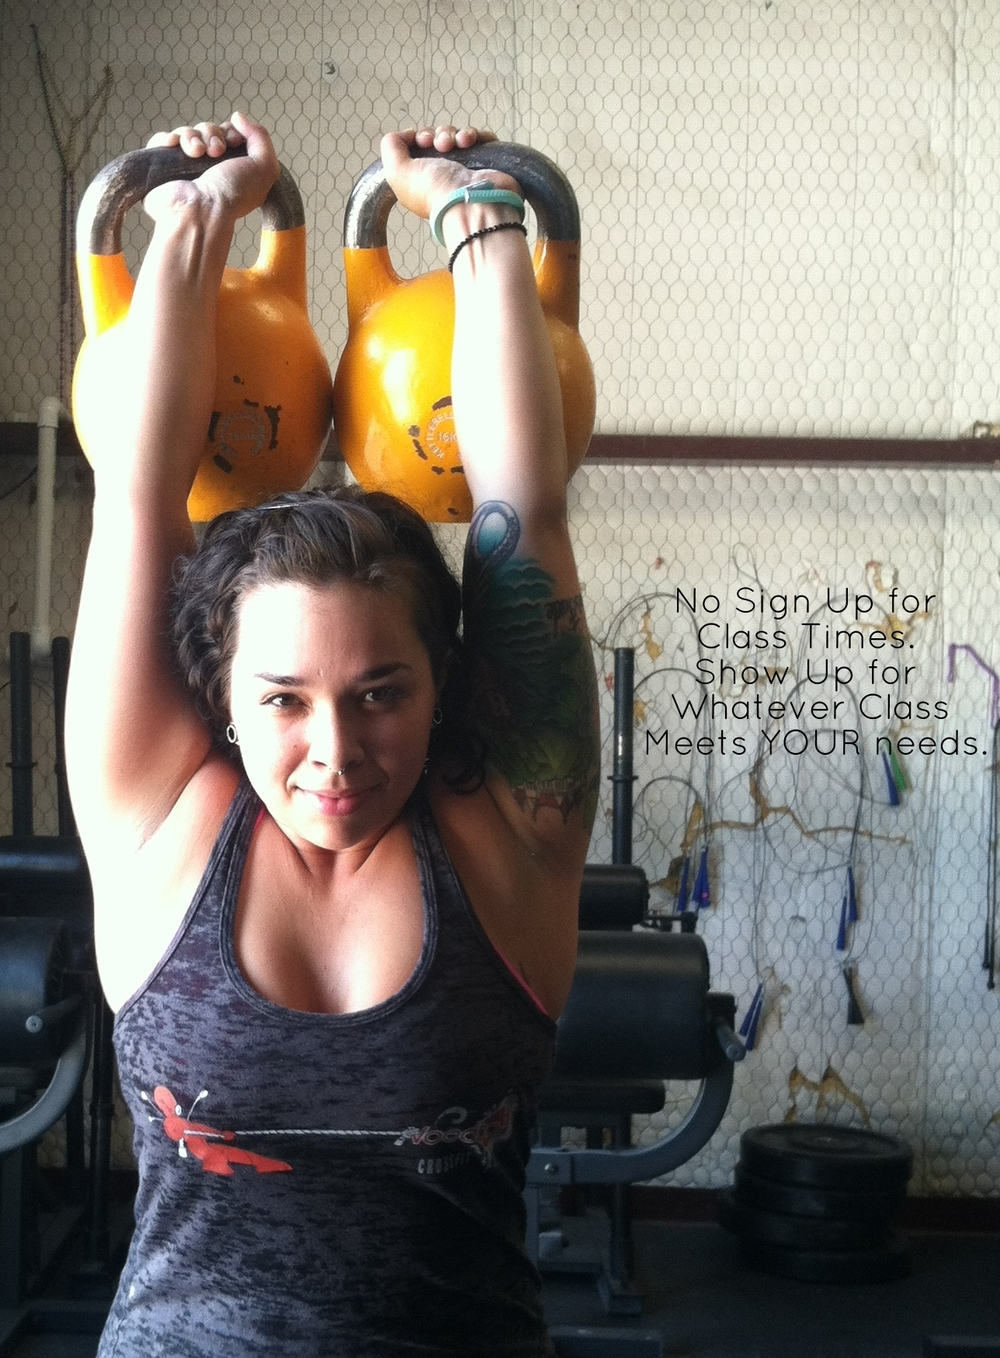 Becca Flores at North Austin's hottest fitness  spot